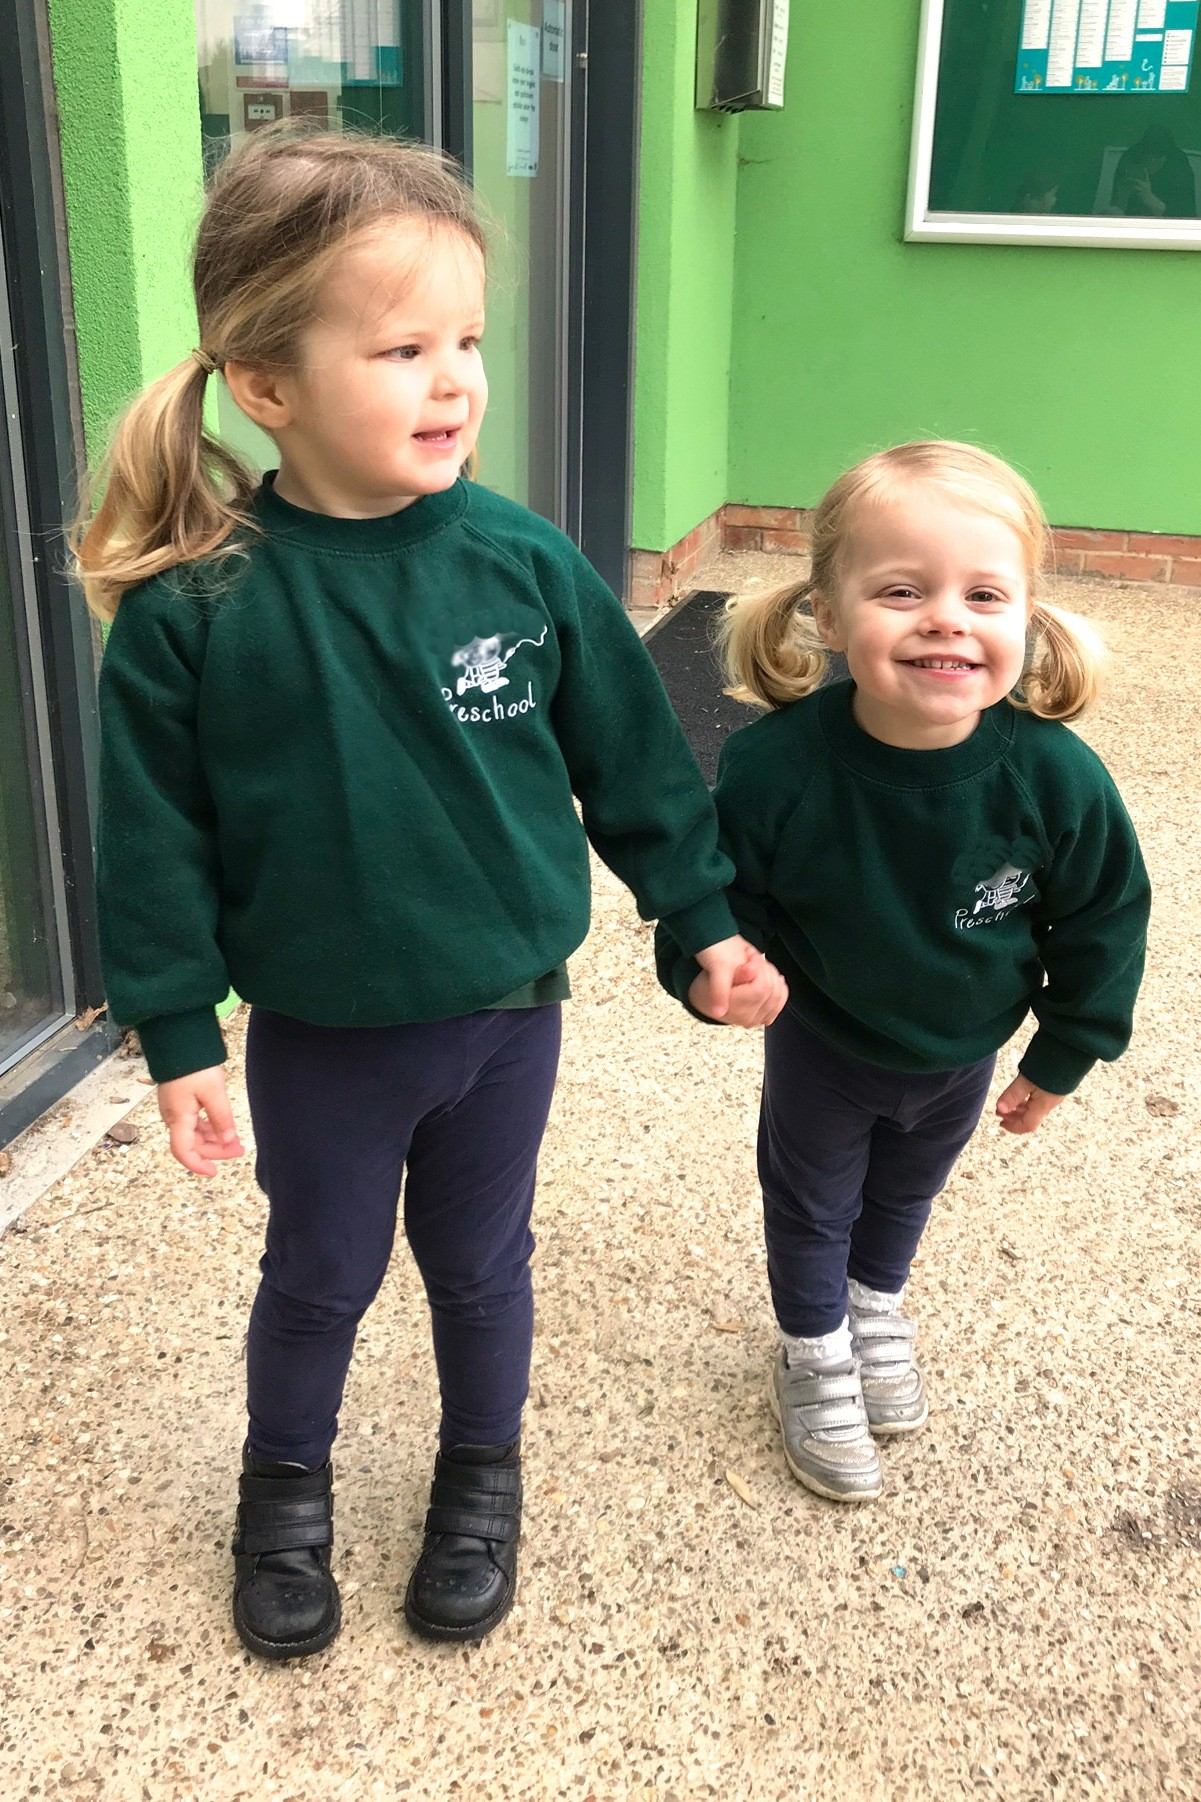 two sisters holding hands in preschool uniform, smiling